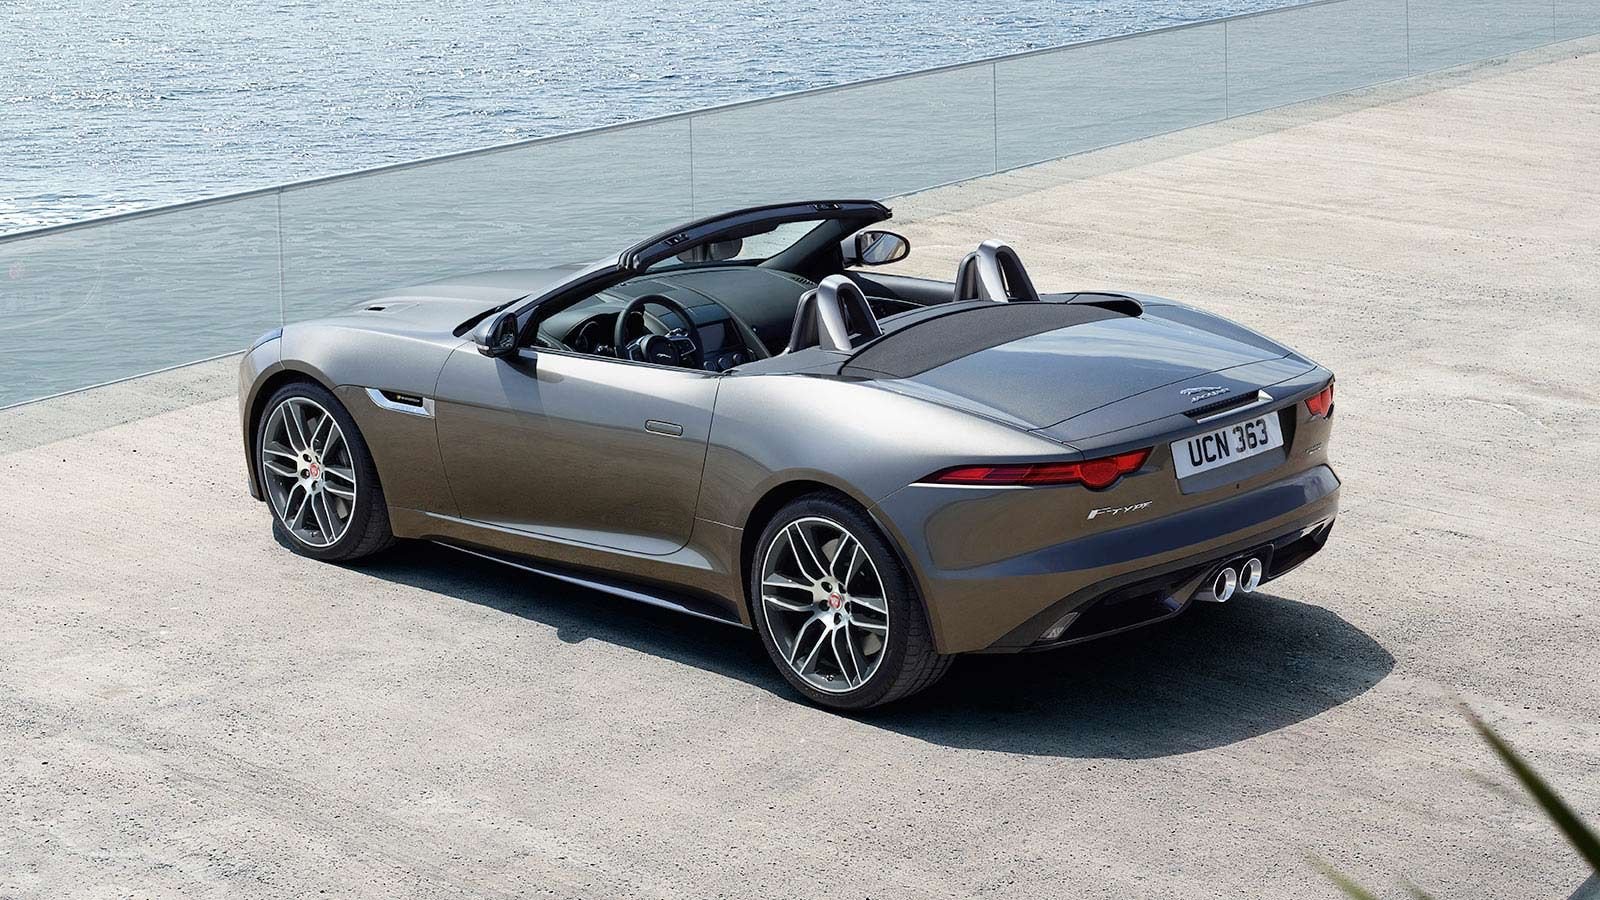 Take A Look Through The 2020 Jaguar F Type Convertible Image Gallery For A Better Look At All That This Stunning Jaguar Convertible Jaguar F Type Jaguar Sport